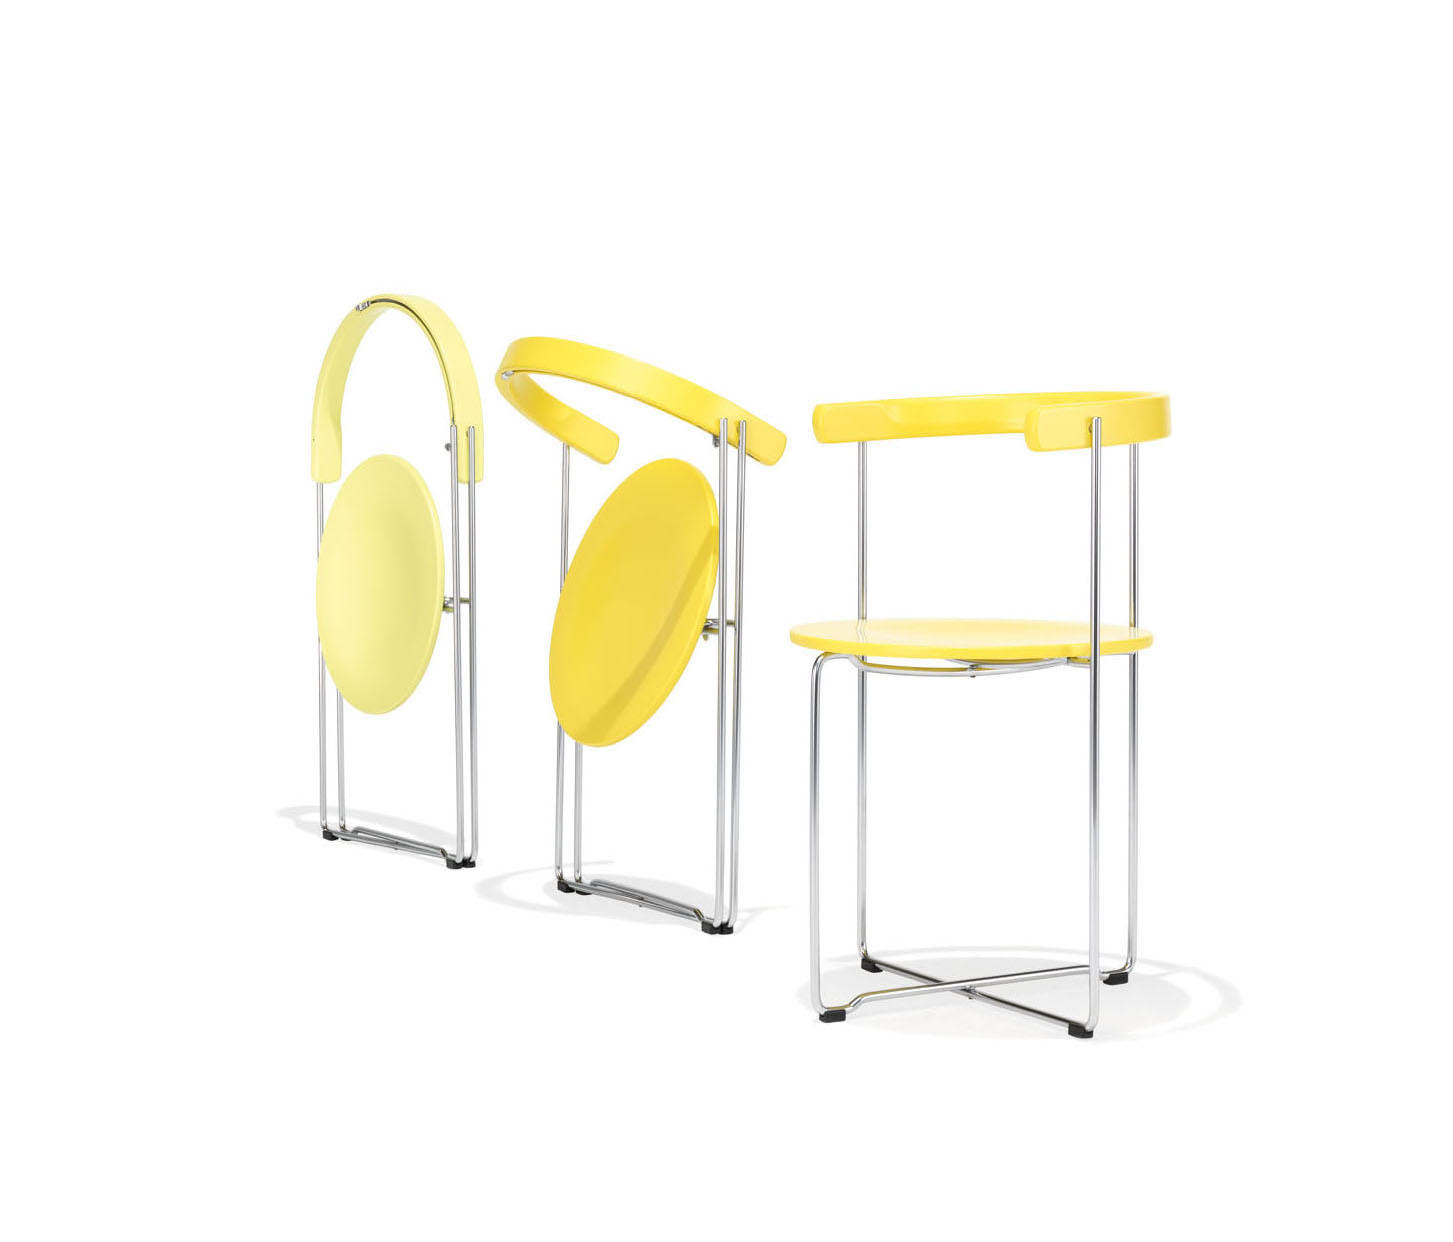 2750/3 SÓLEY - Multipurpose chairs from Kusch+Co | Architonic